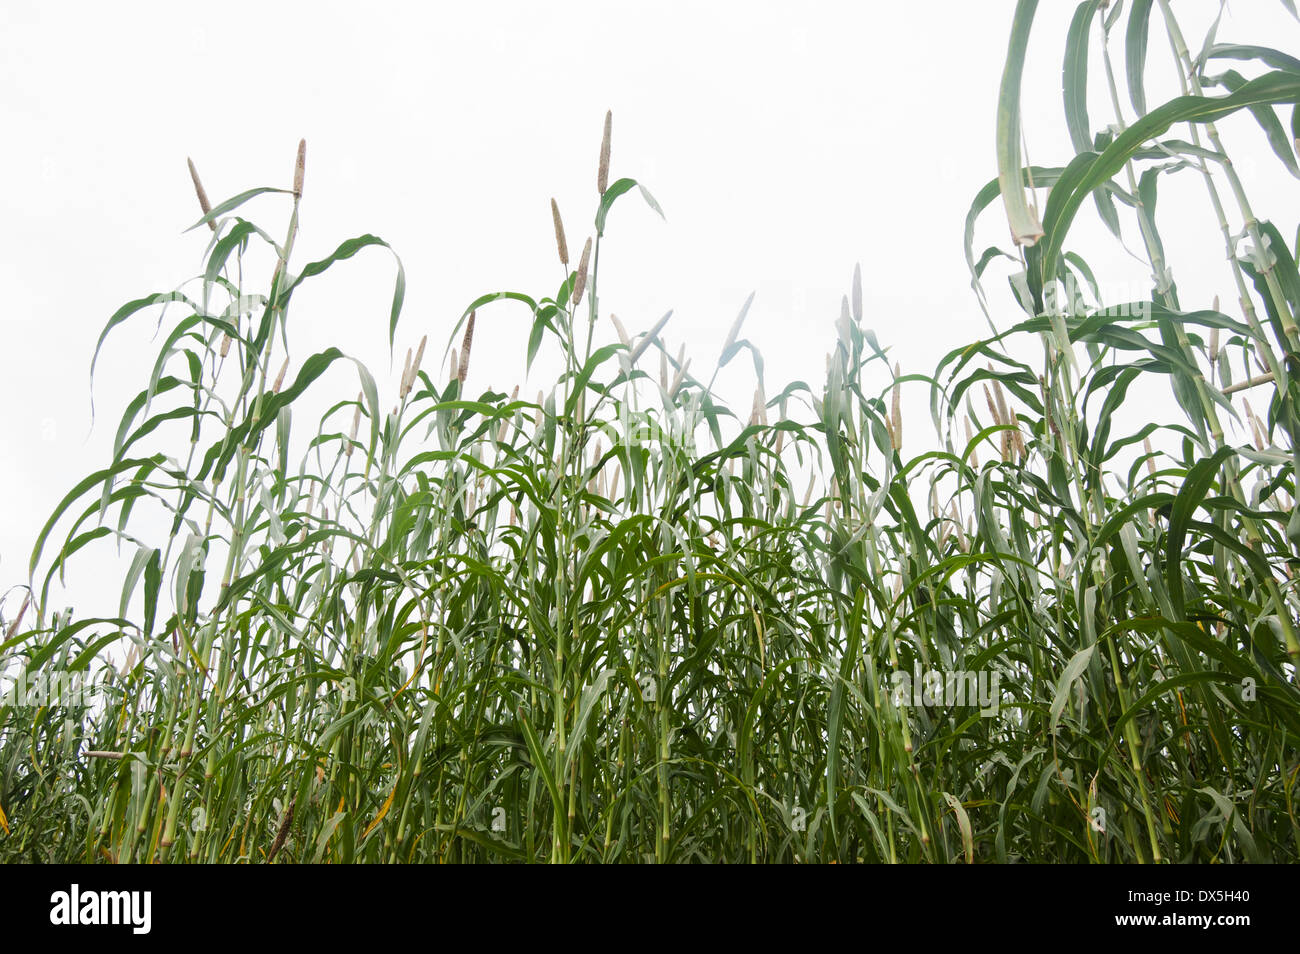 Indian Agricultural Area - Stock Image